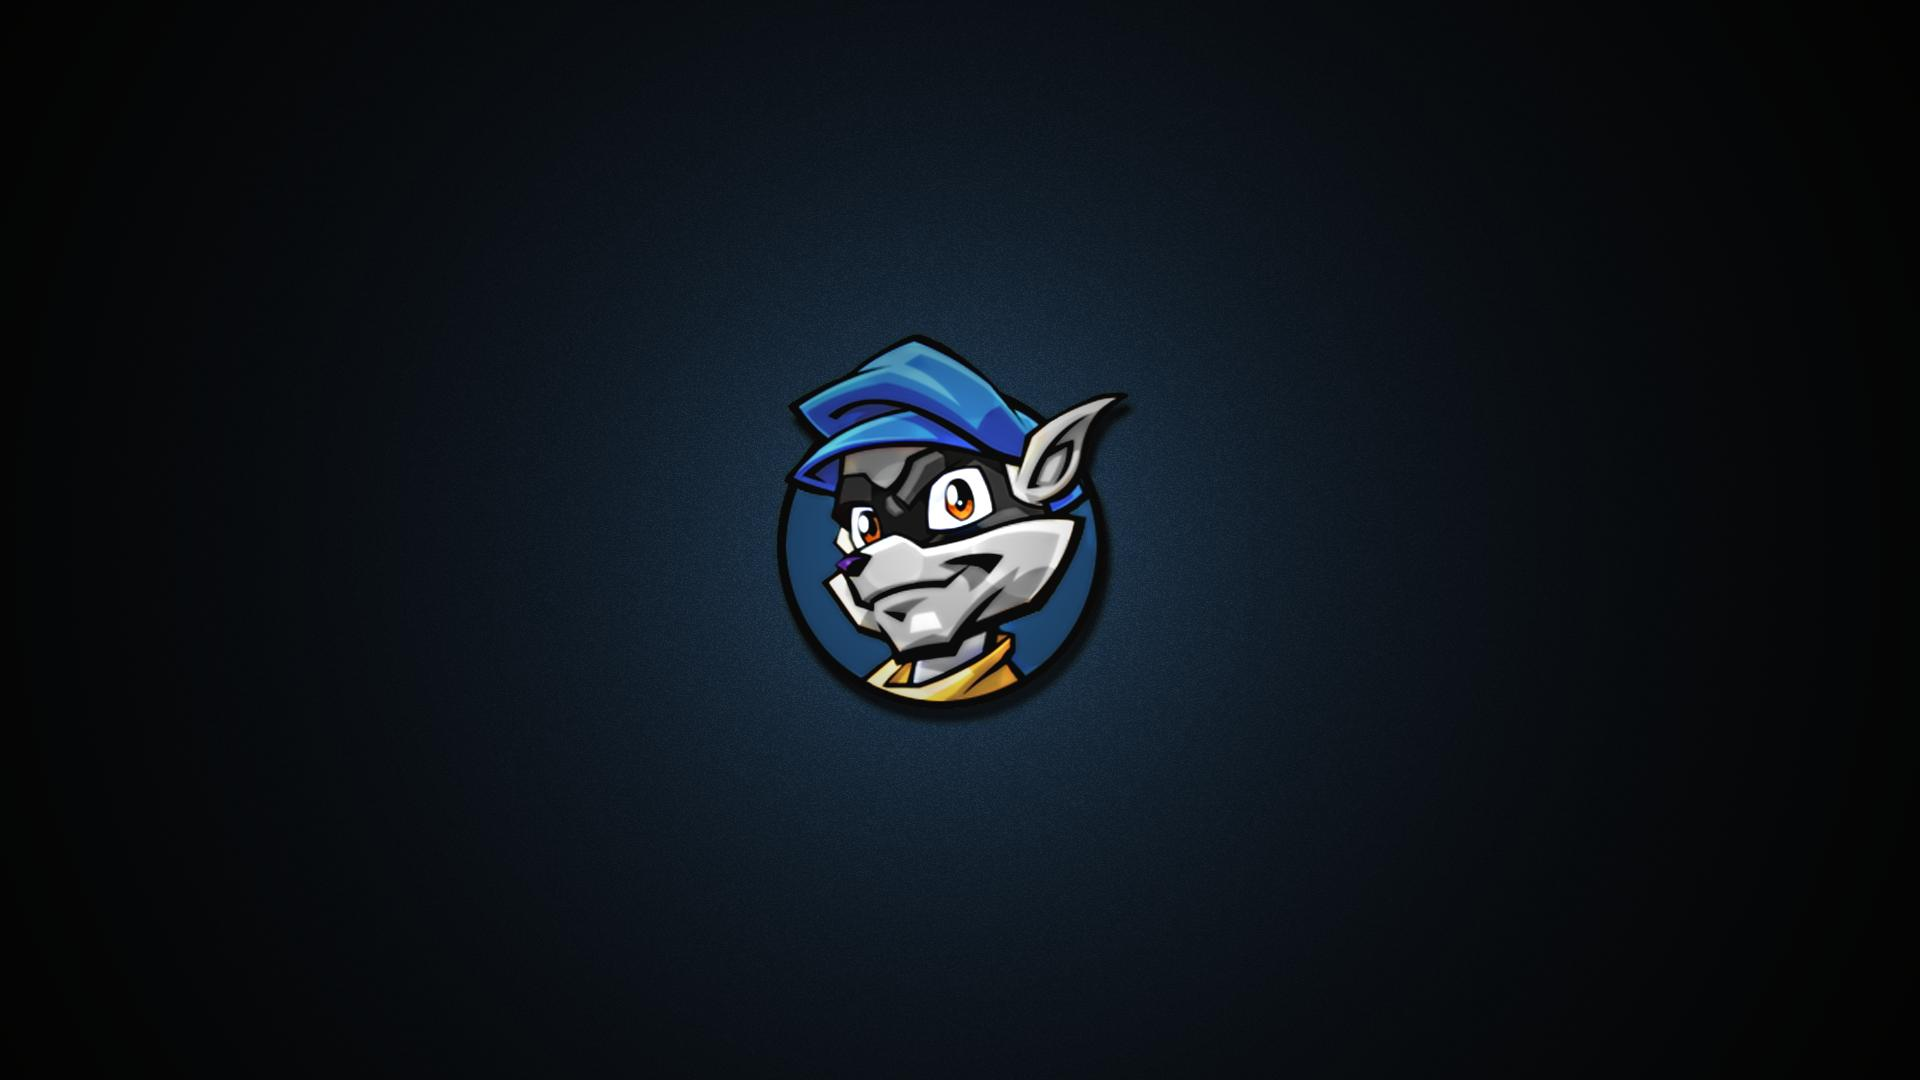 Sly Cooper Wallpaper [1920x1080] wallpapers 1920x1080